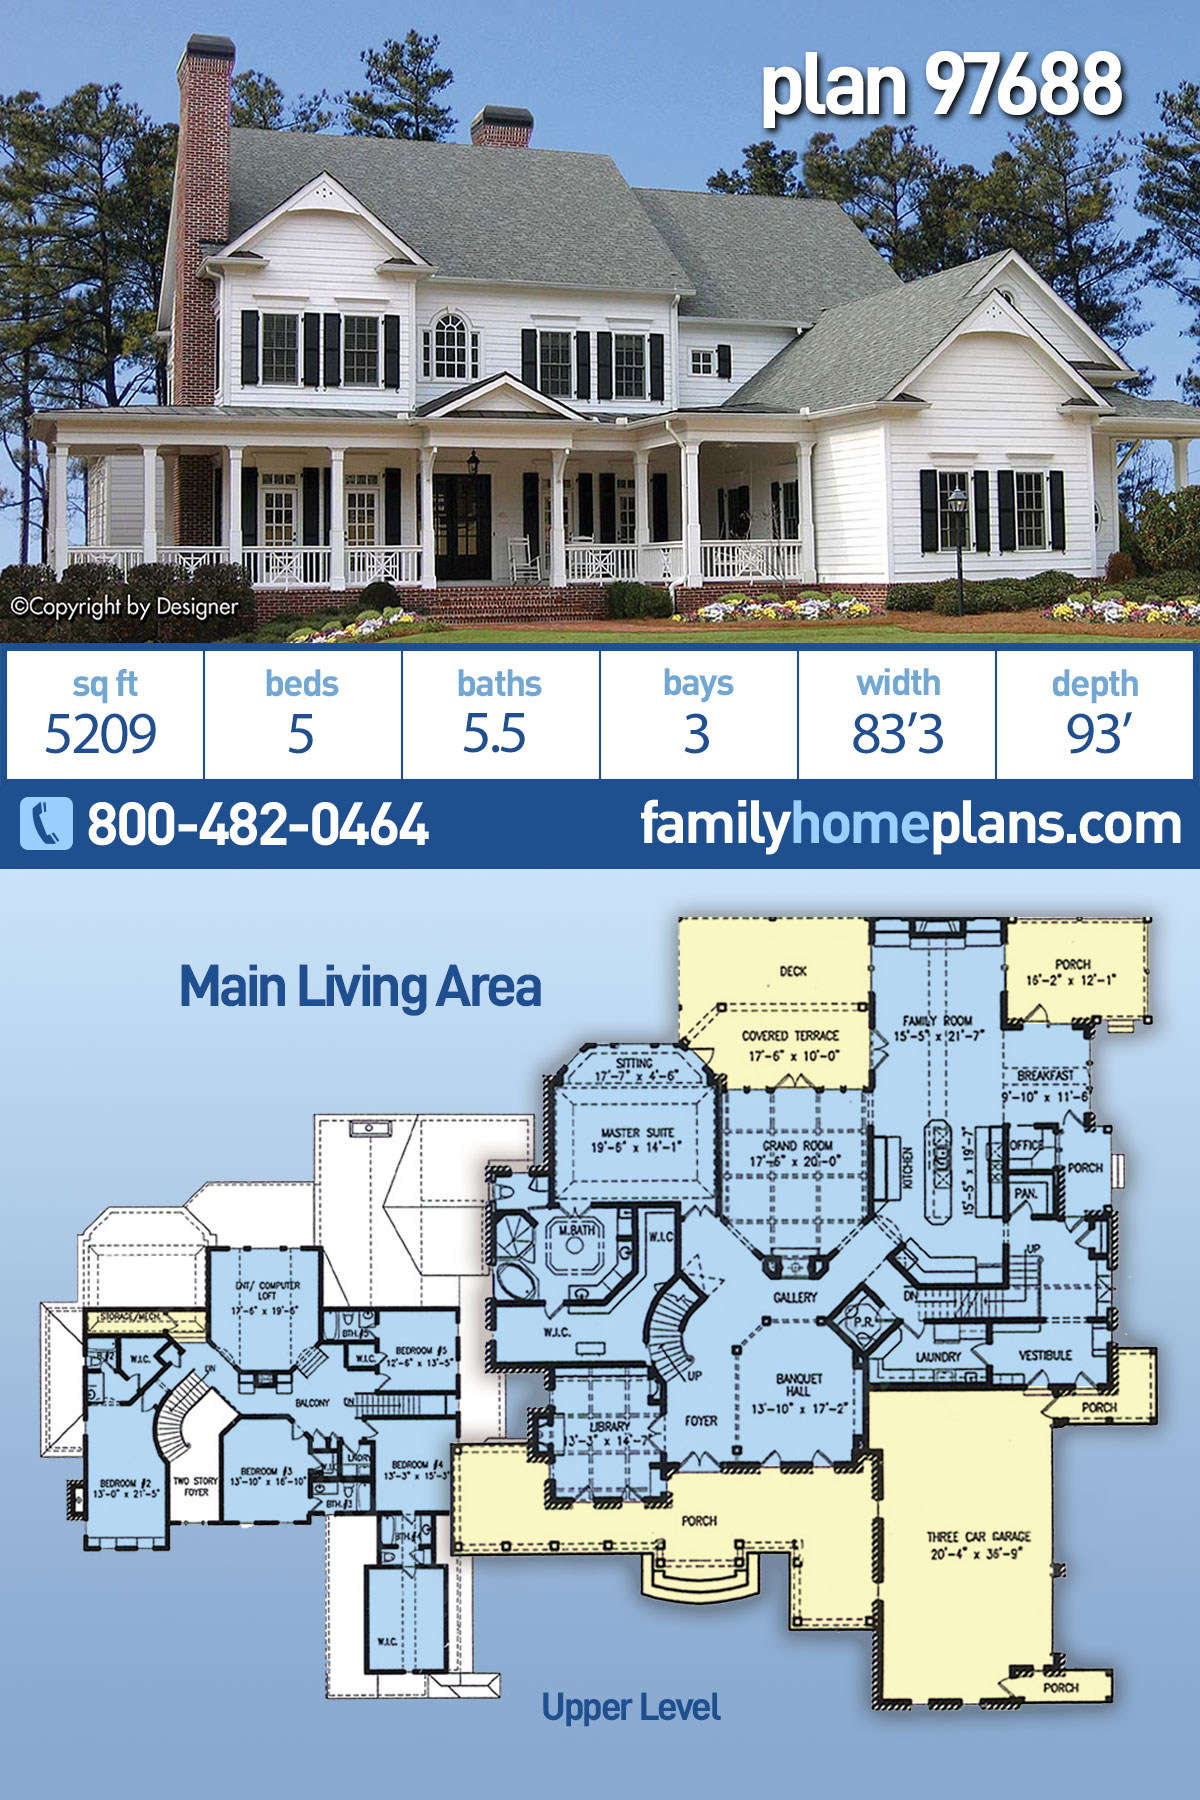 Country, Farmhouse, Southern, Traditional House Plan 97688 with 5 Beds, 6 Baths, 3 Car Garage